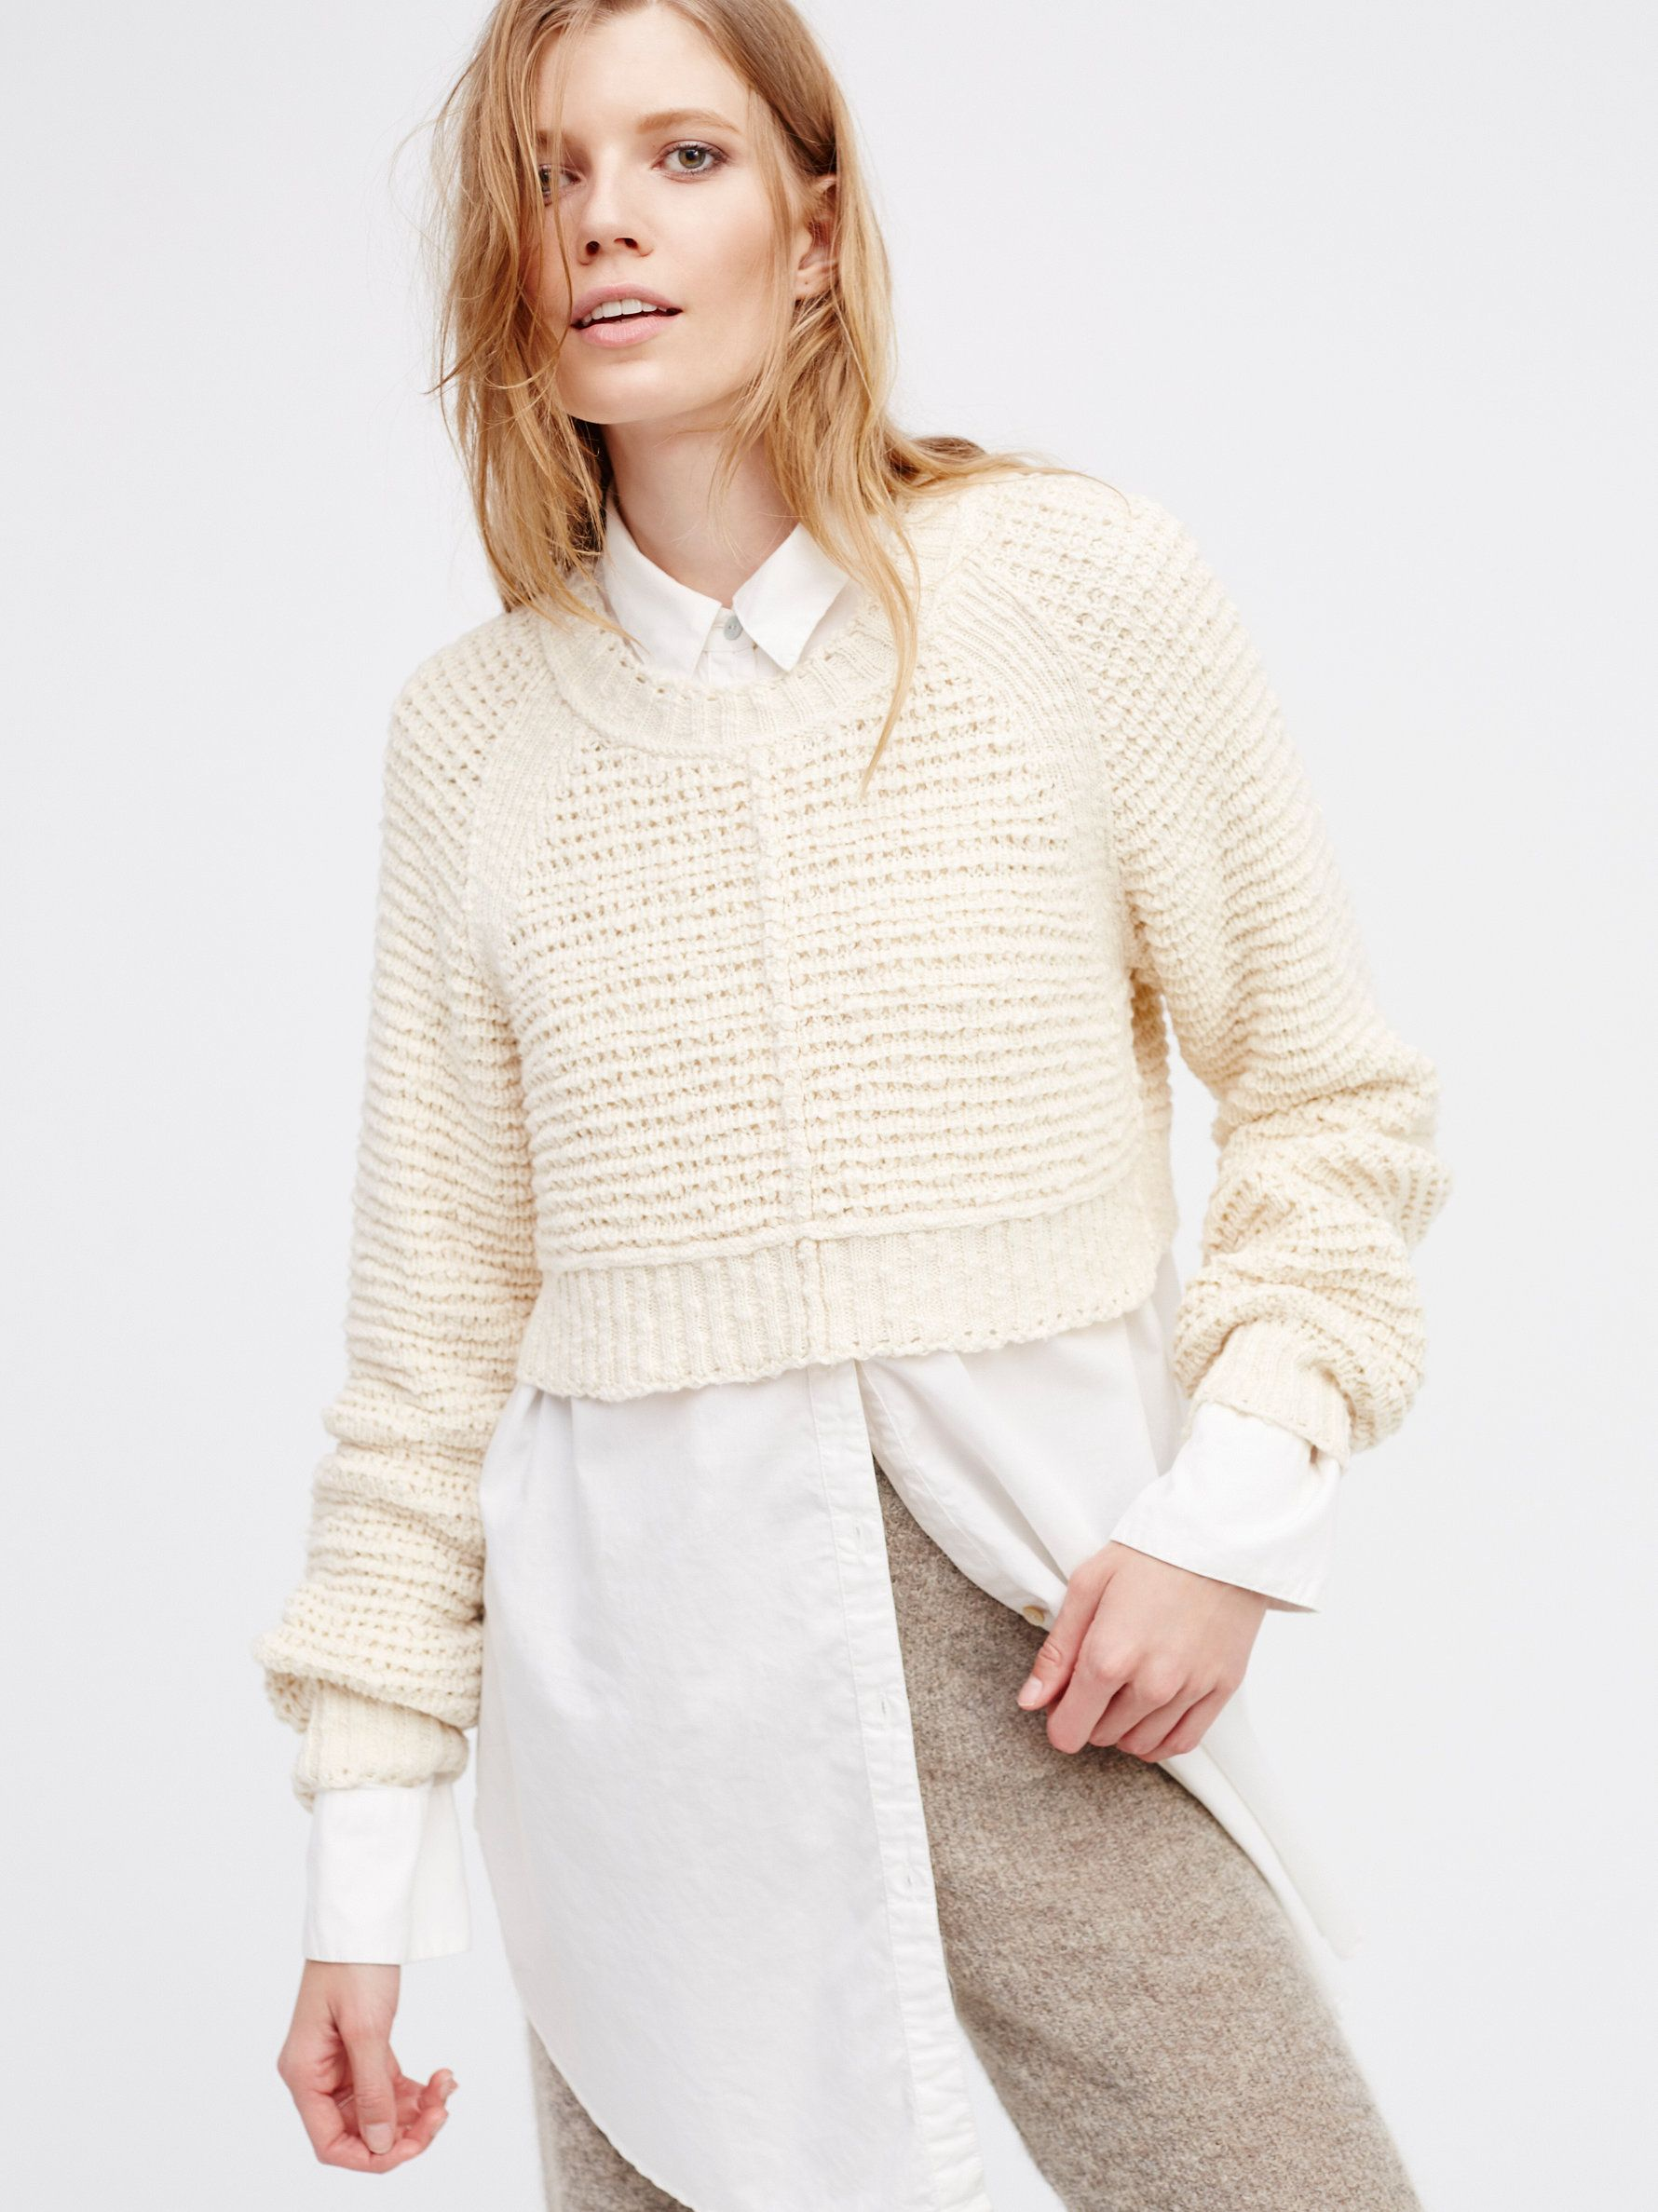 Rosita Crop | Simple cropped knit sweater with a lived-in look. Cool, relaxed silhouette.